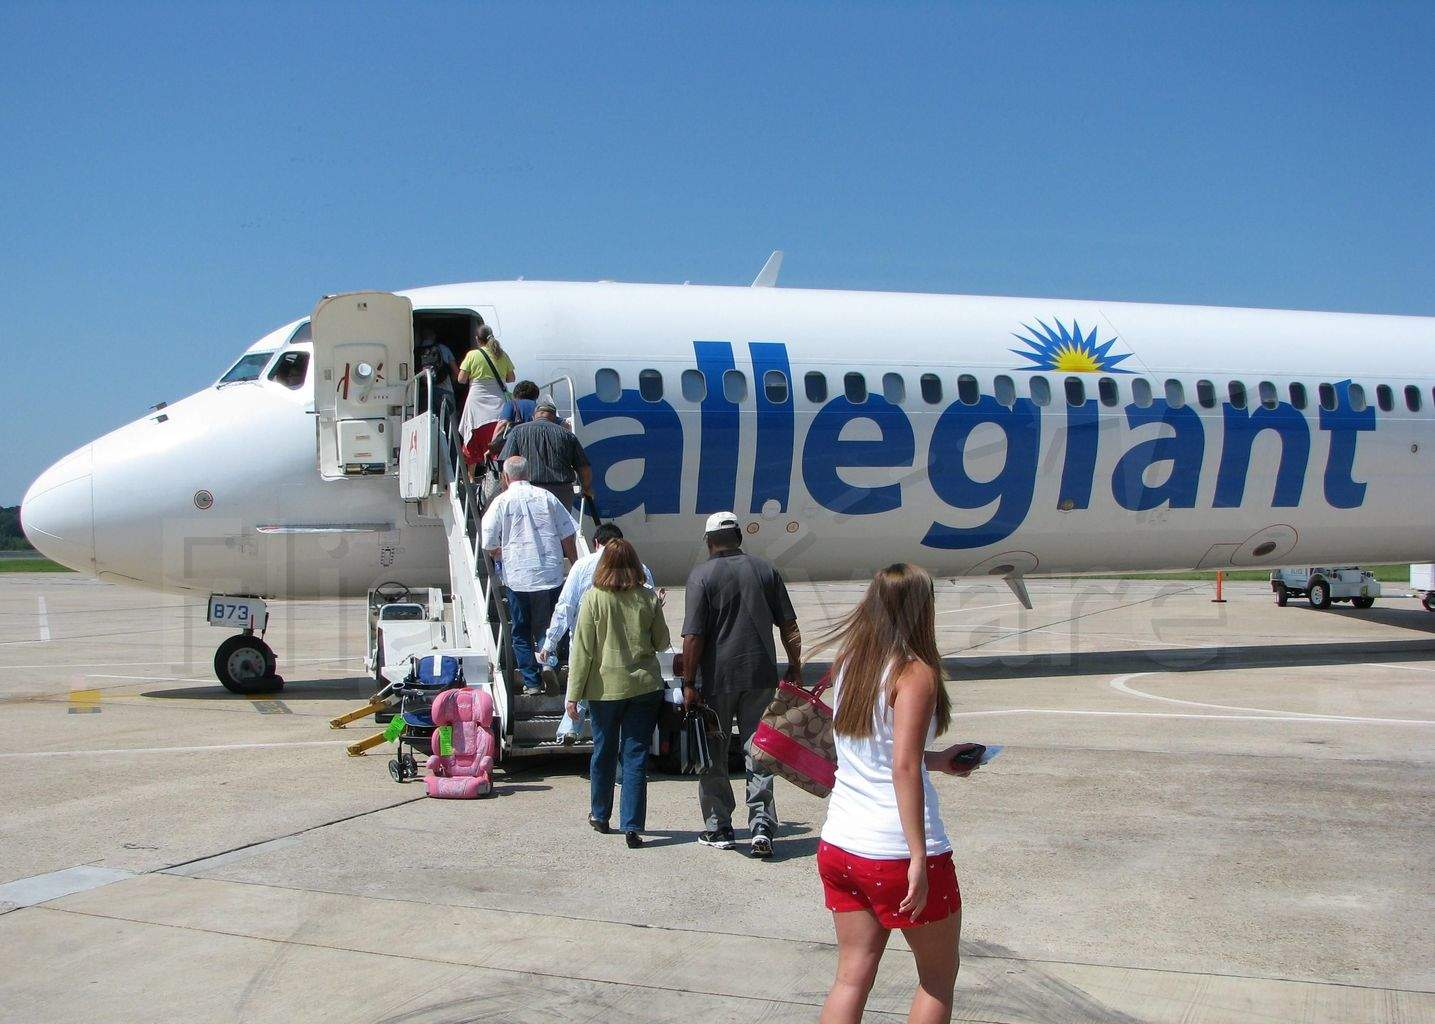 FAA report reveals serious safety concerns at Allegiant